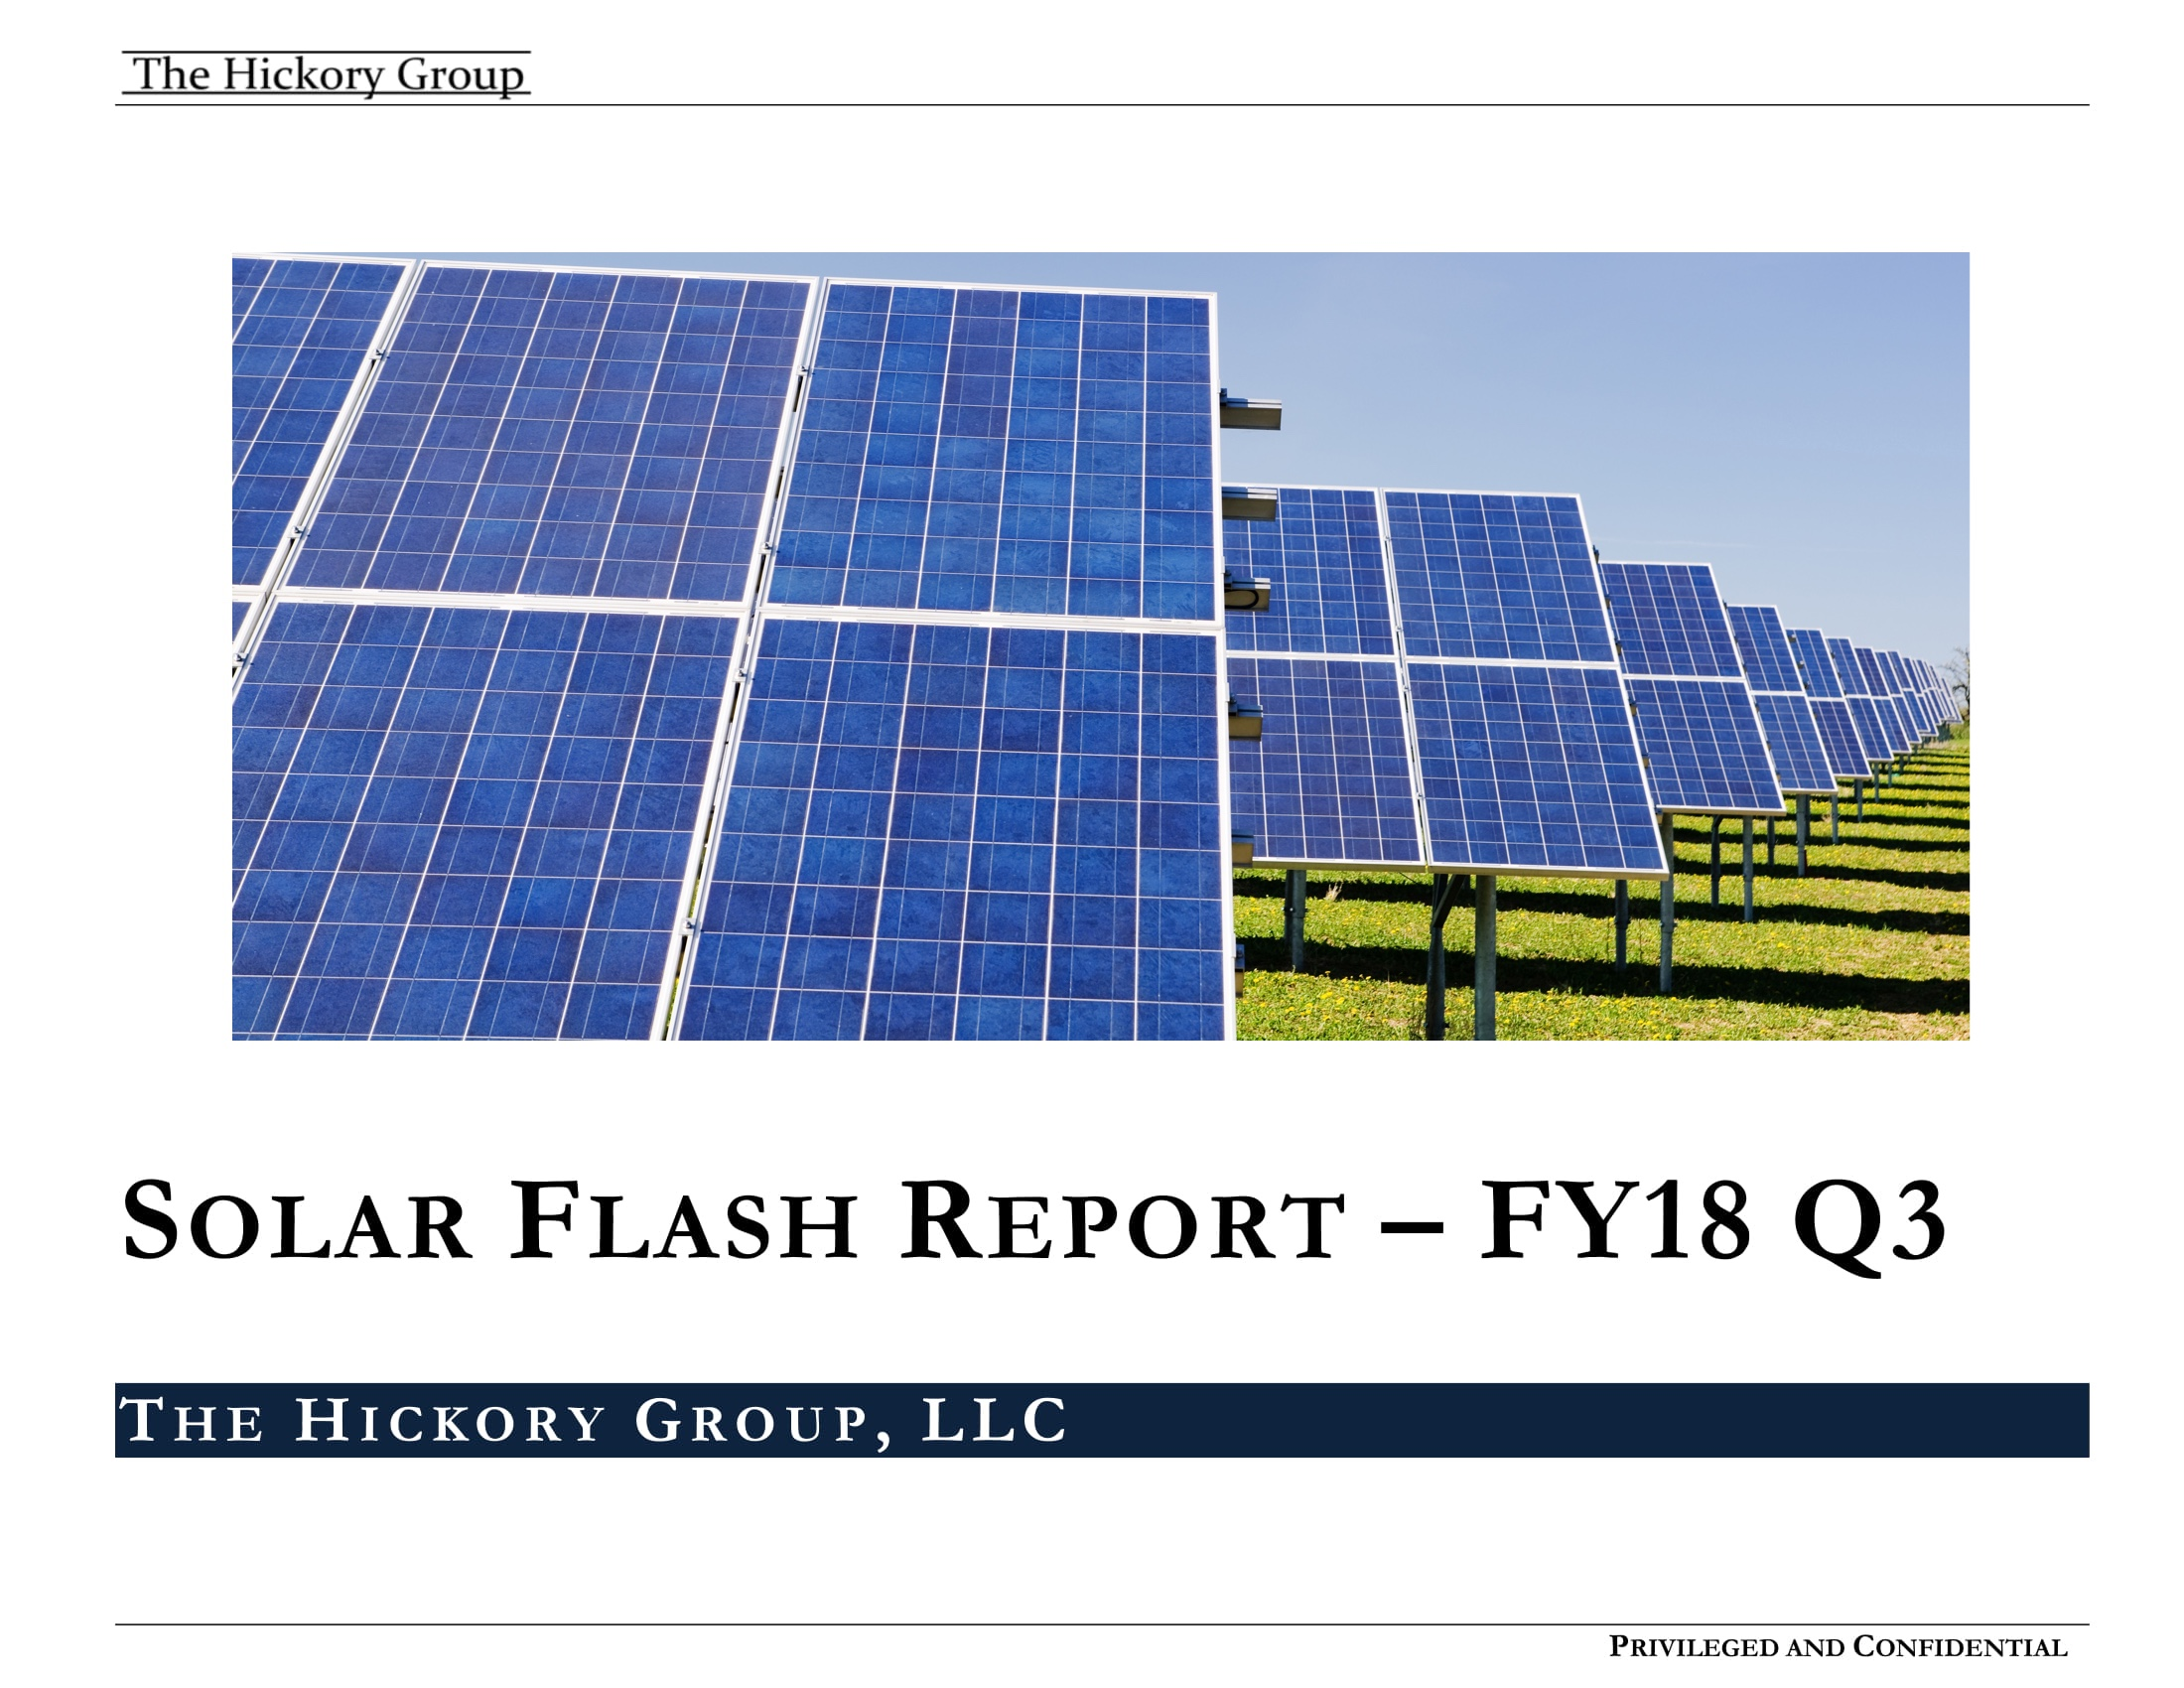 Solar Flash Report 1.jpg